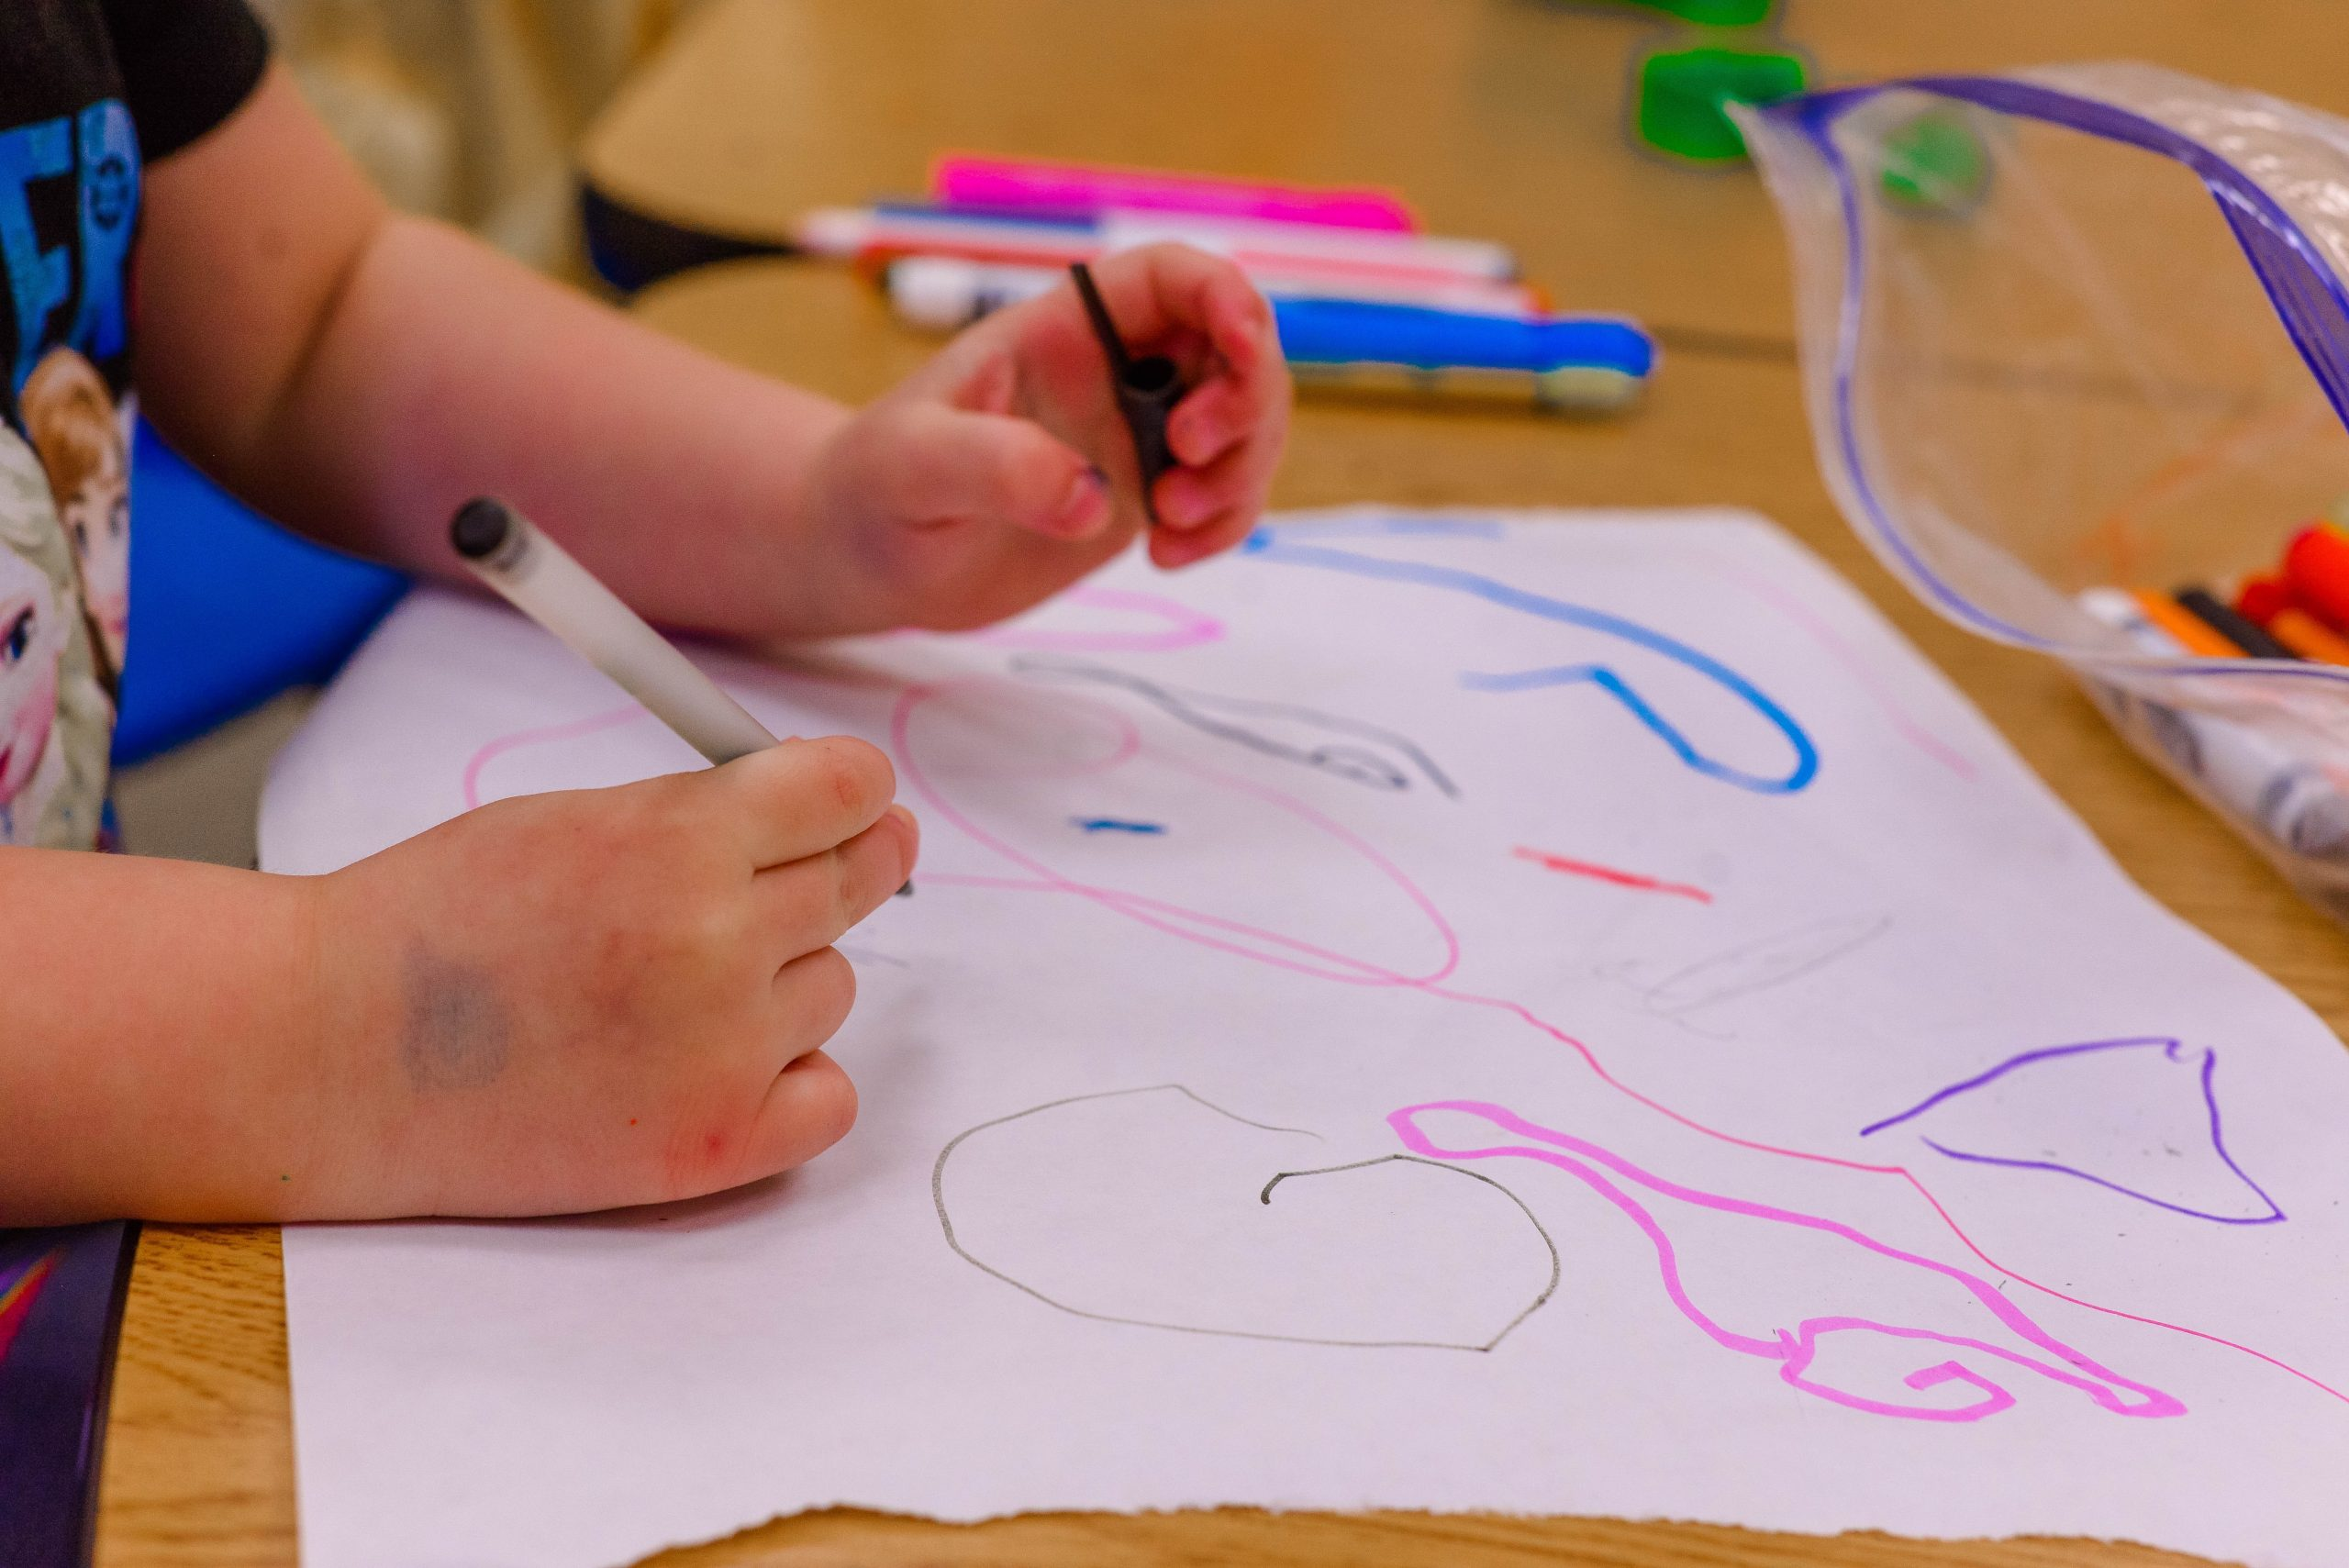 Tips for a smooth transition to kindergarten